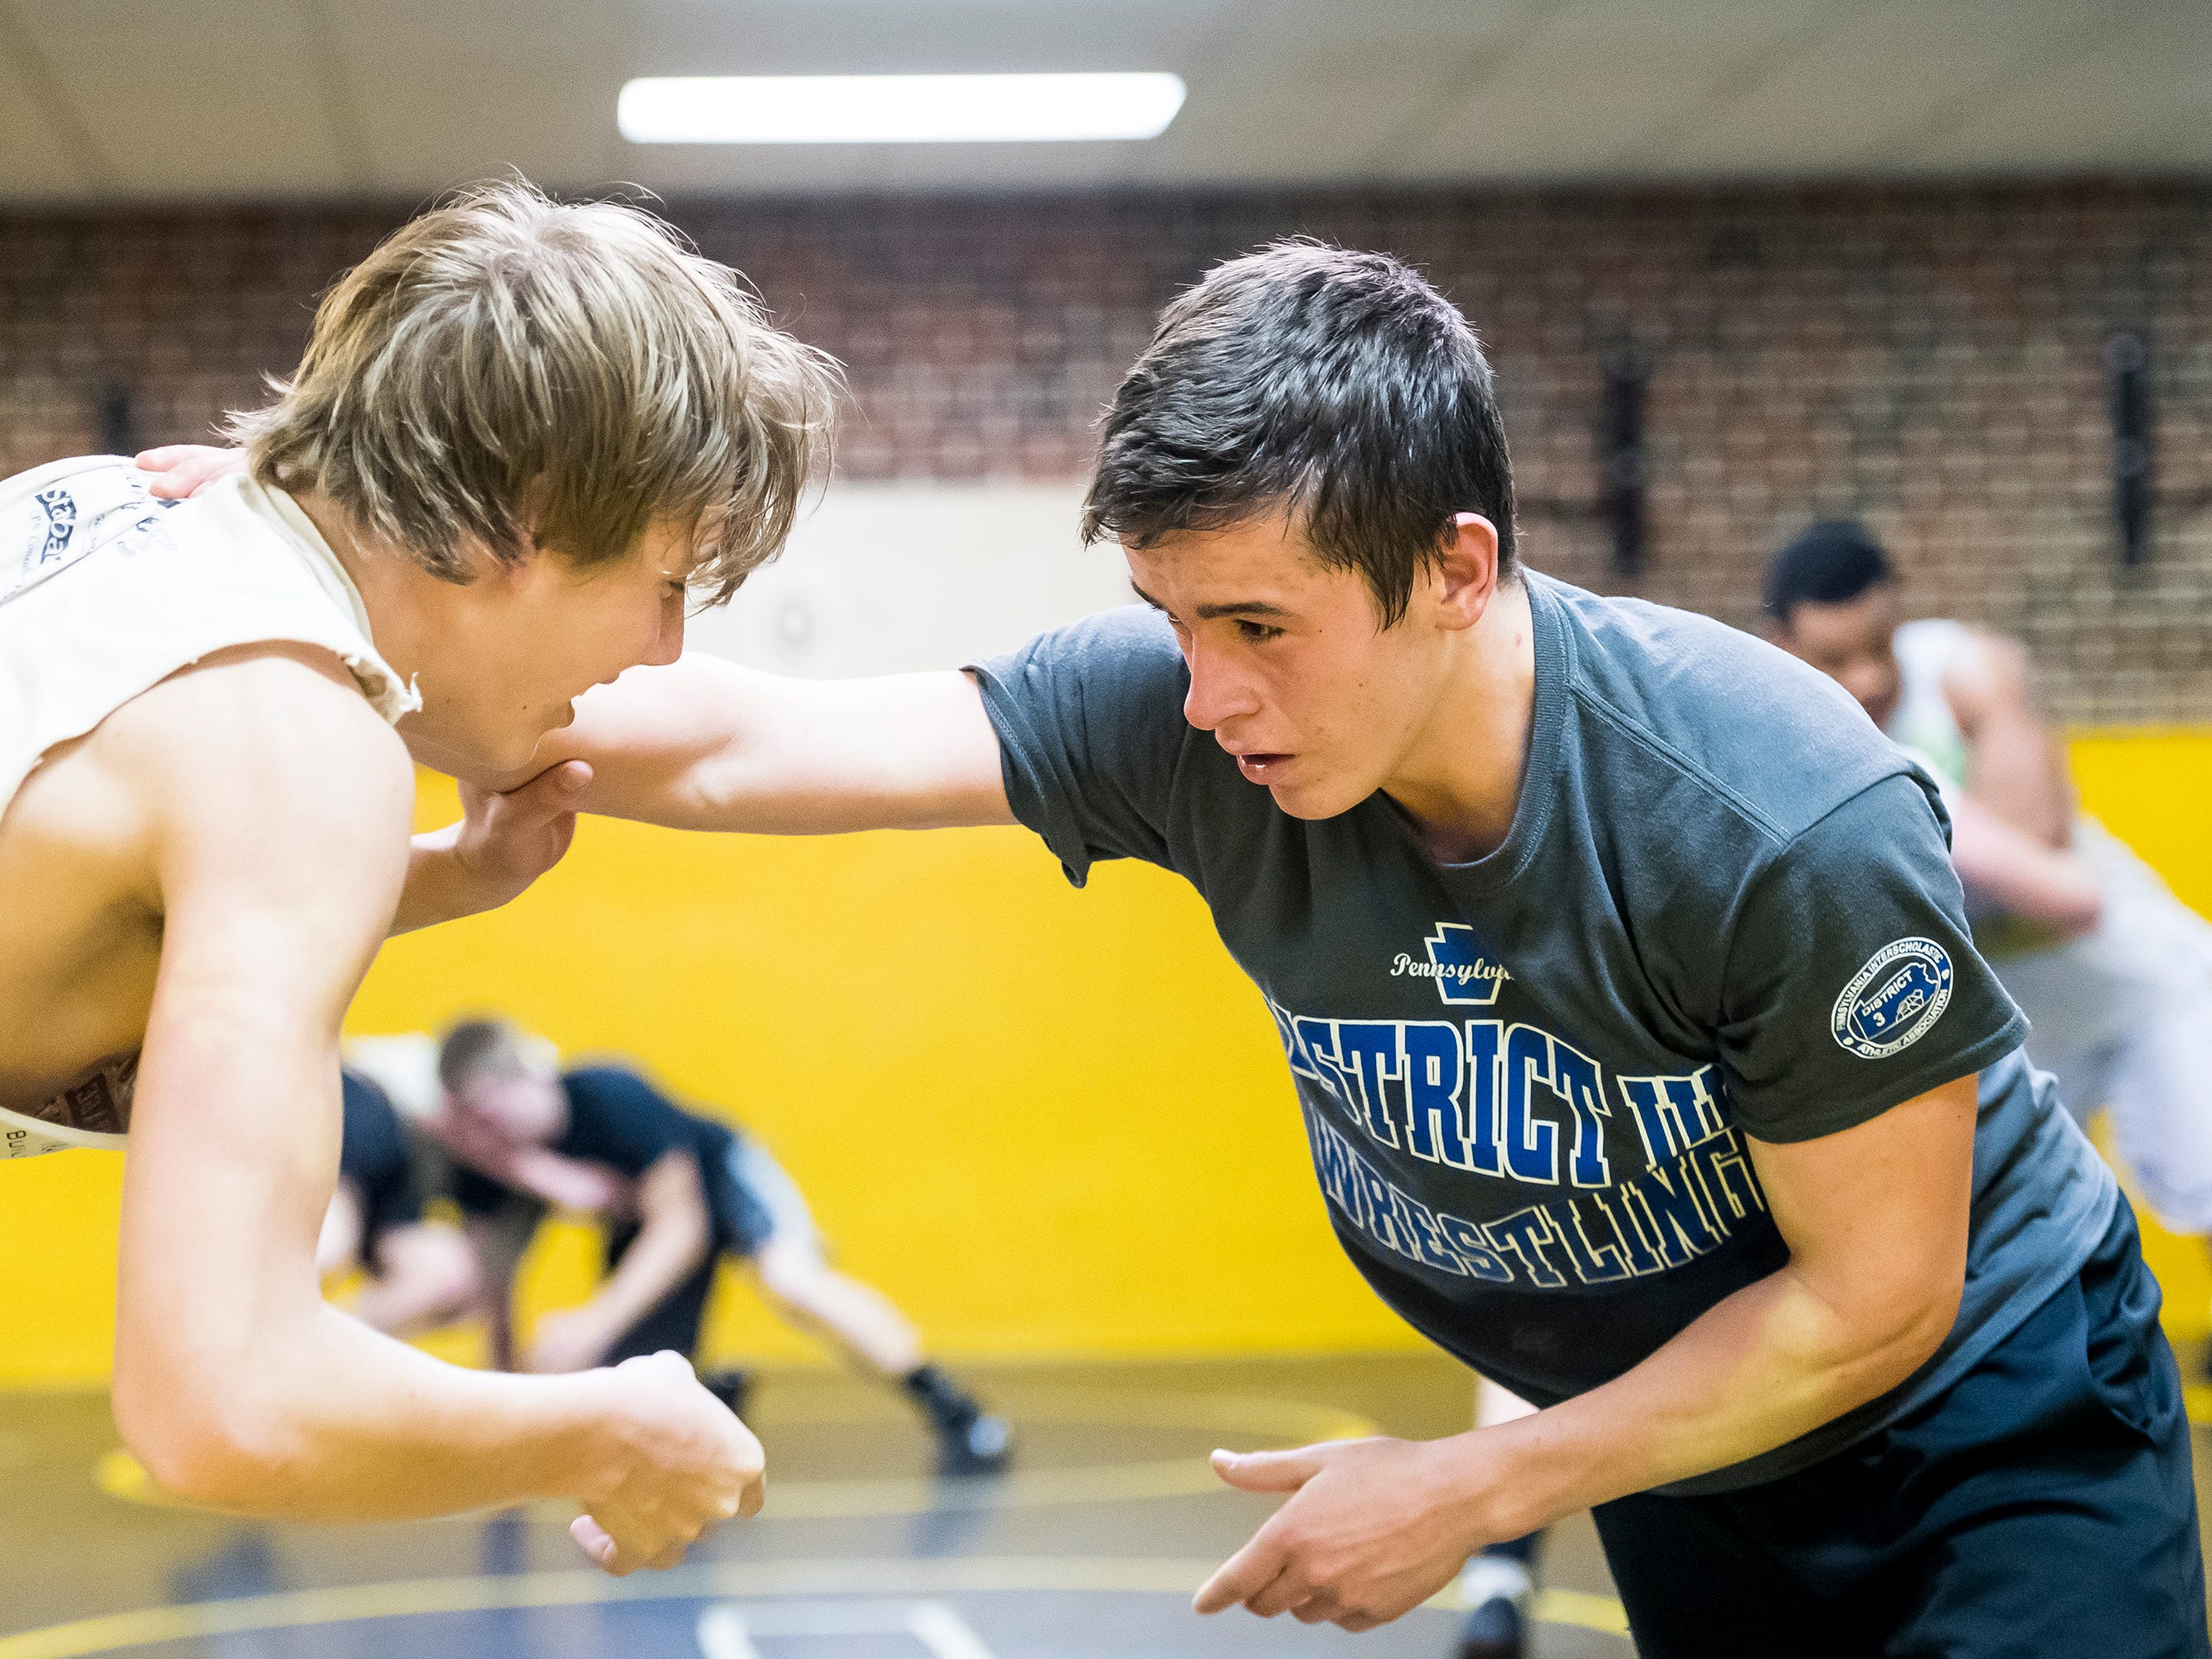 Delon Catholic's Robert Partenza, right, and AJ Knobloch wrestle during the first official day of winter sports practice on Friday, November 16, 2018.